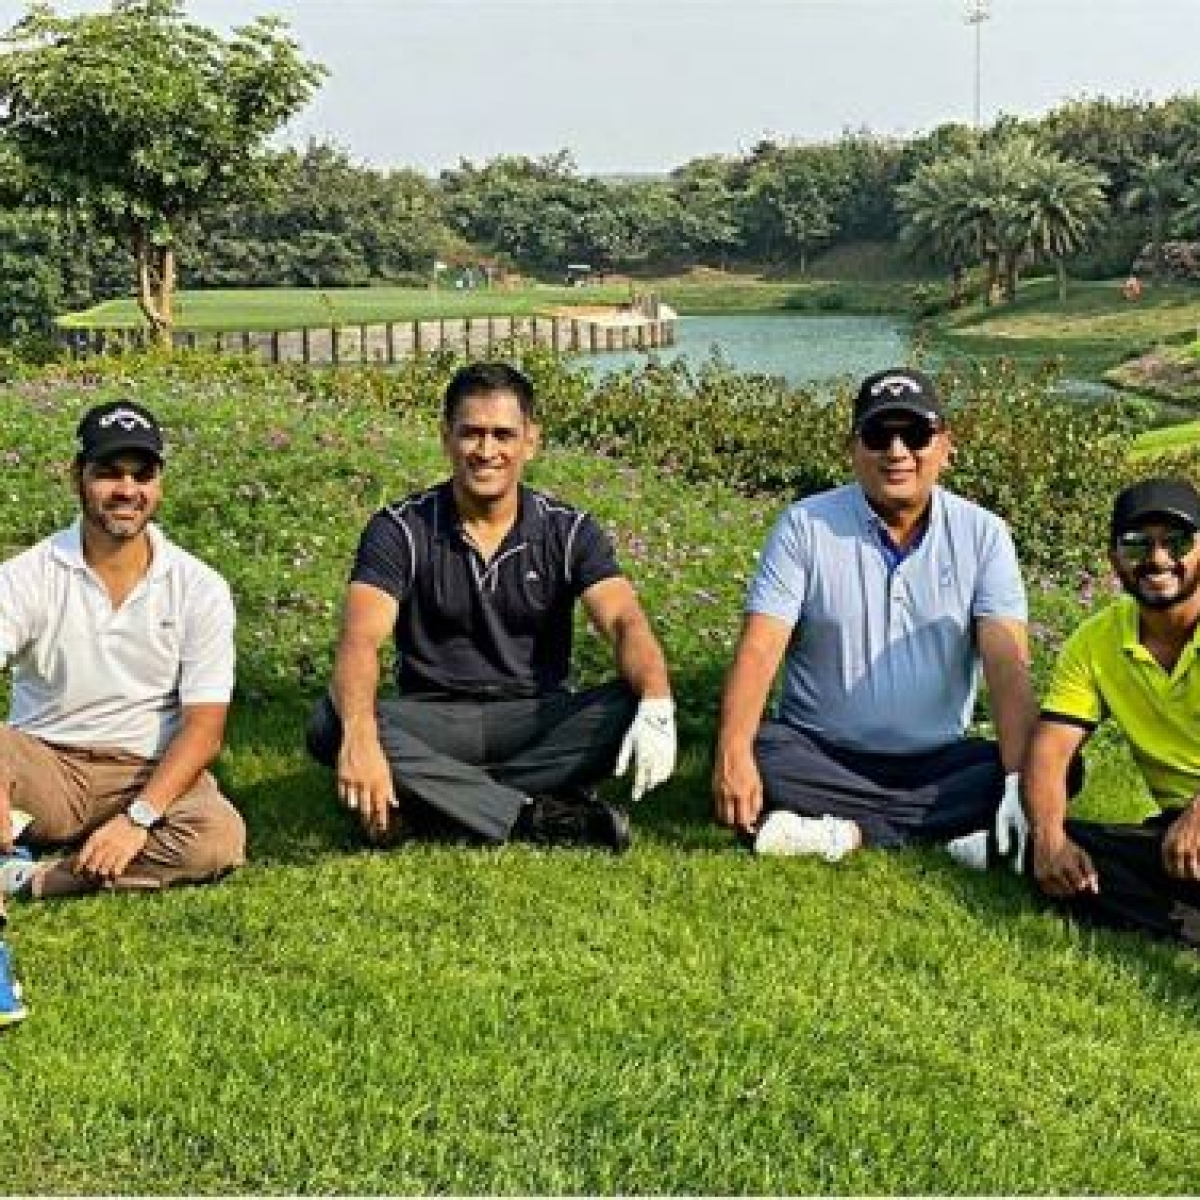 Golf, tennis, football, cricket - is there any sport that MS Dhoni can't play?